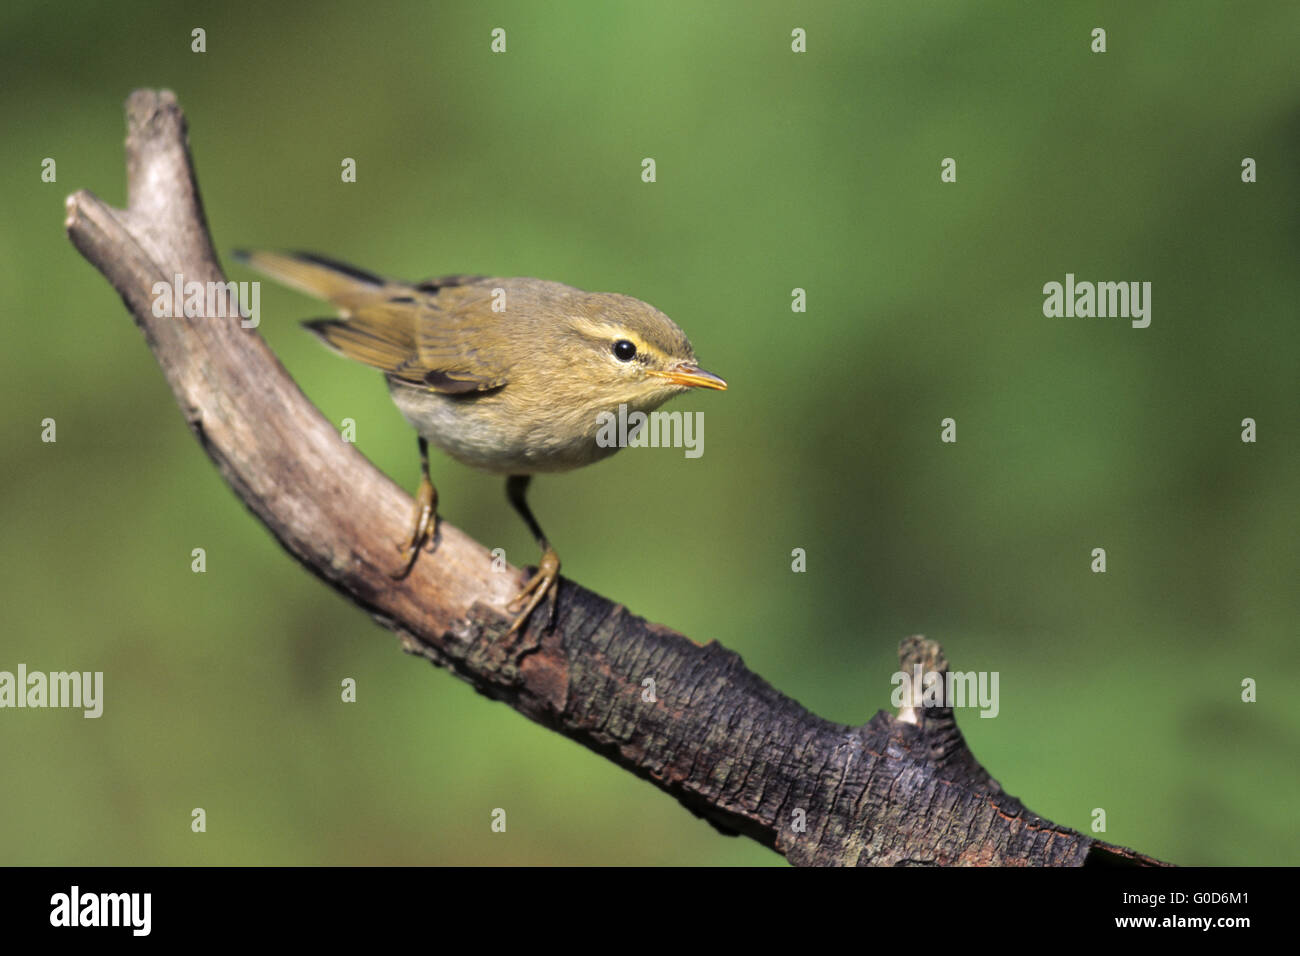 Chiffchaff adult bird sits on a branch - Stock Image